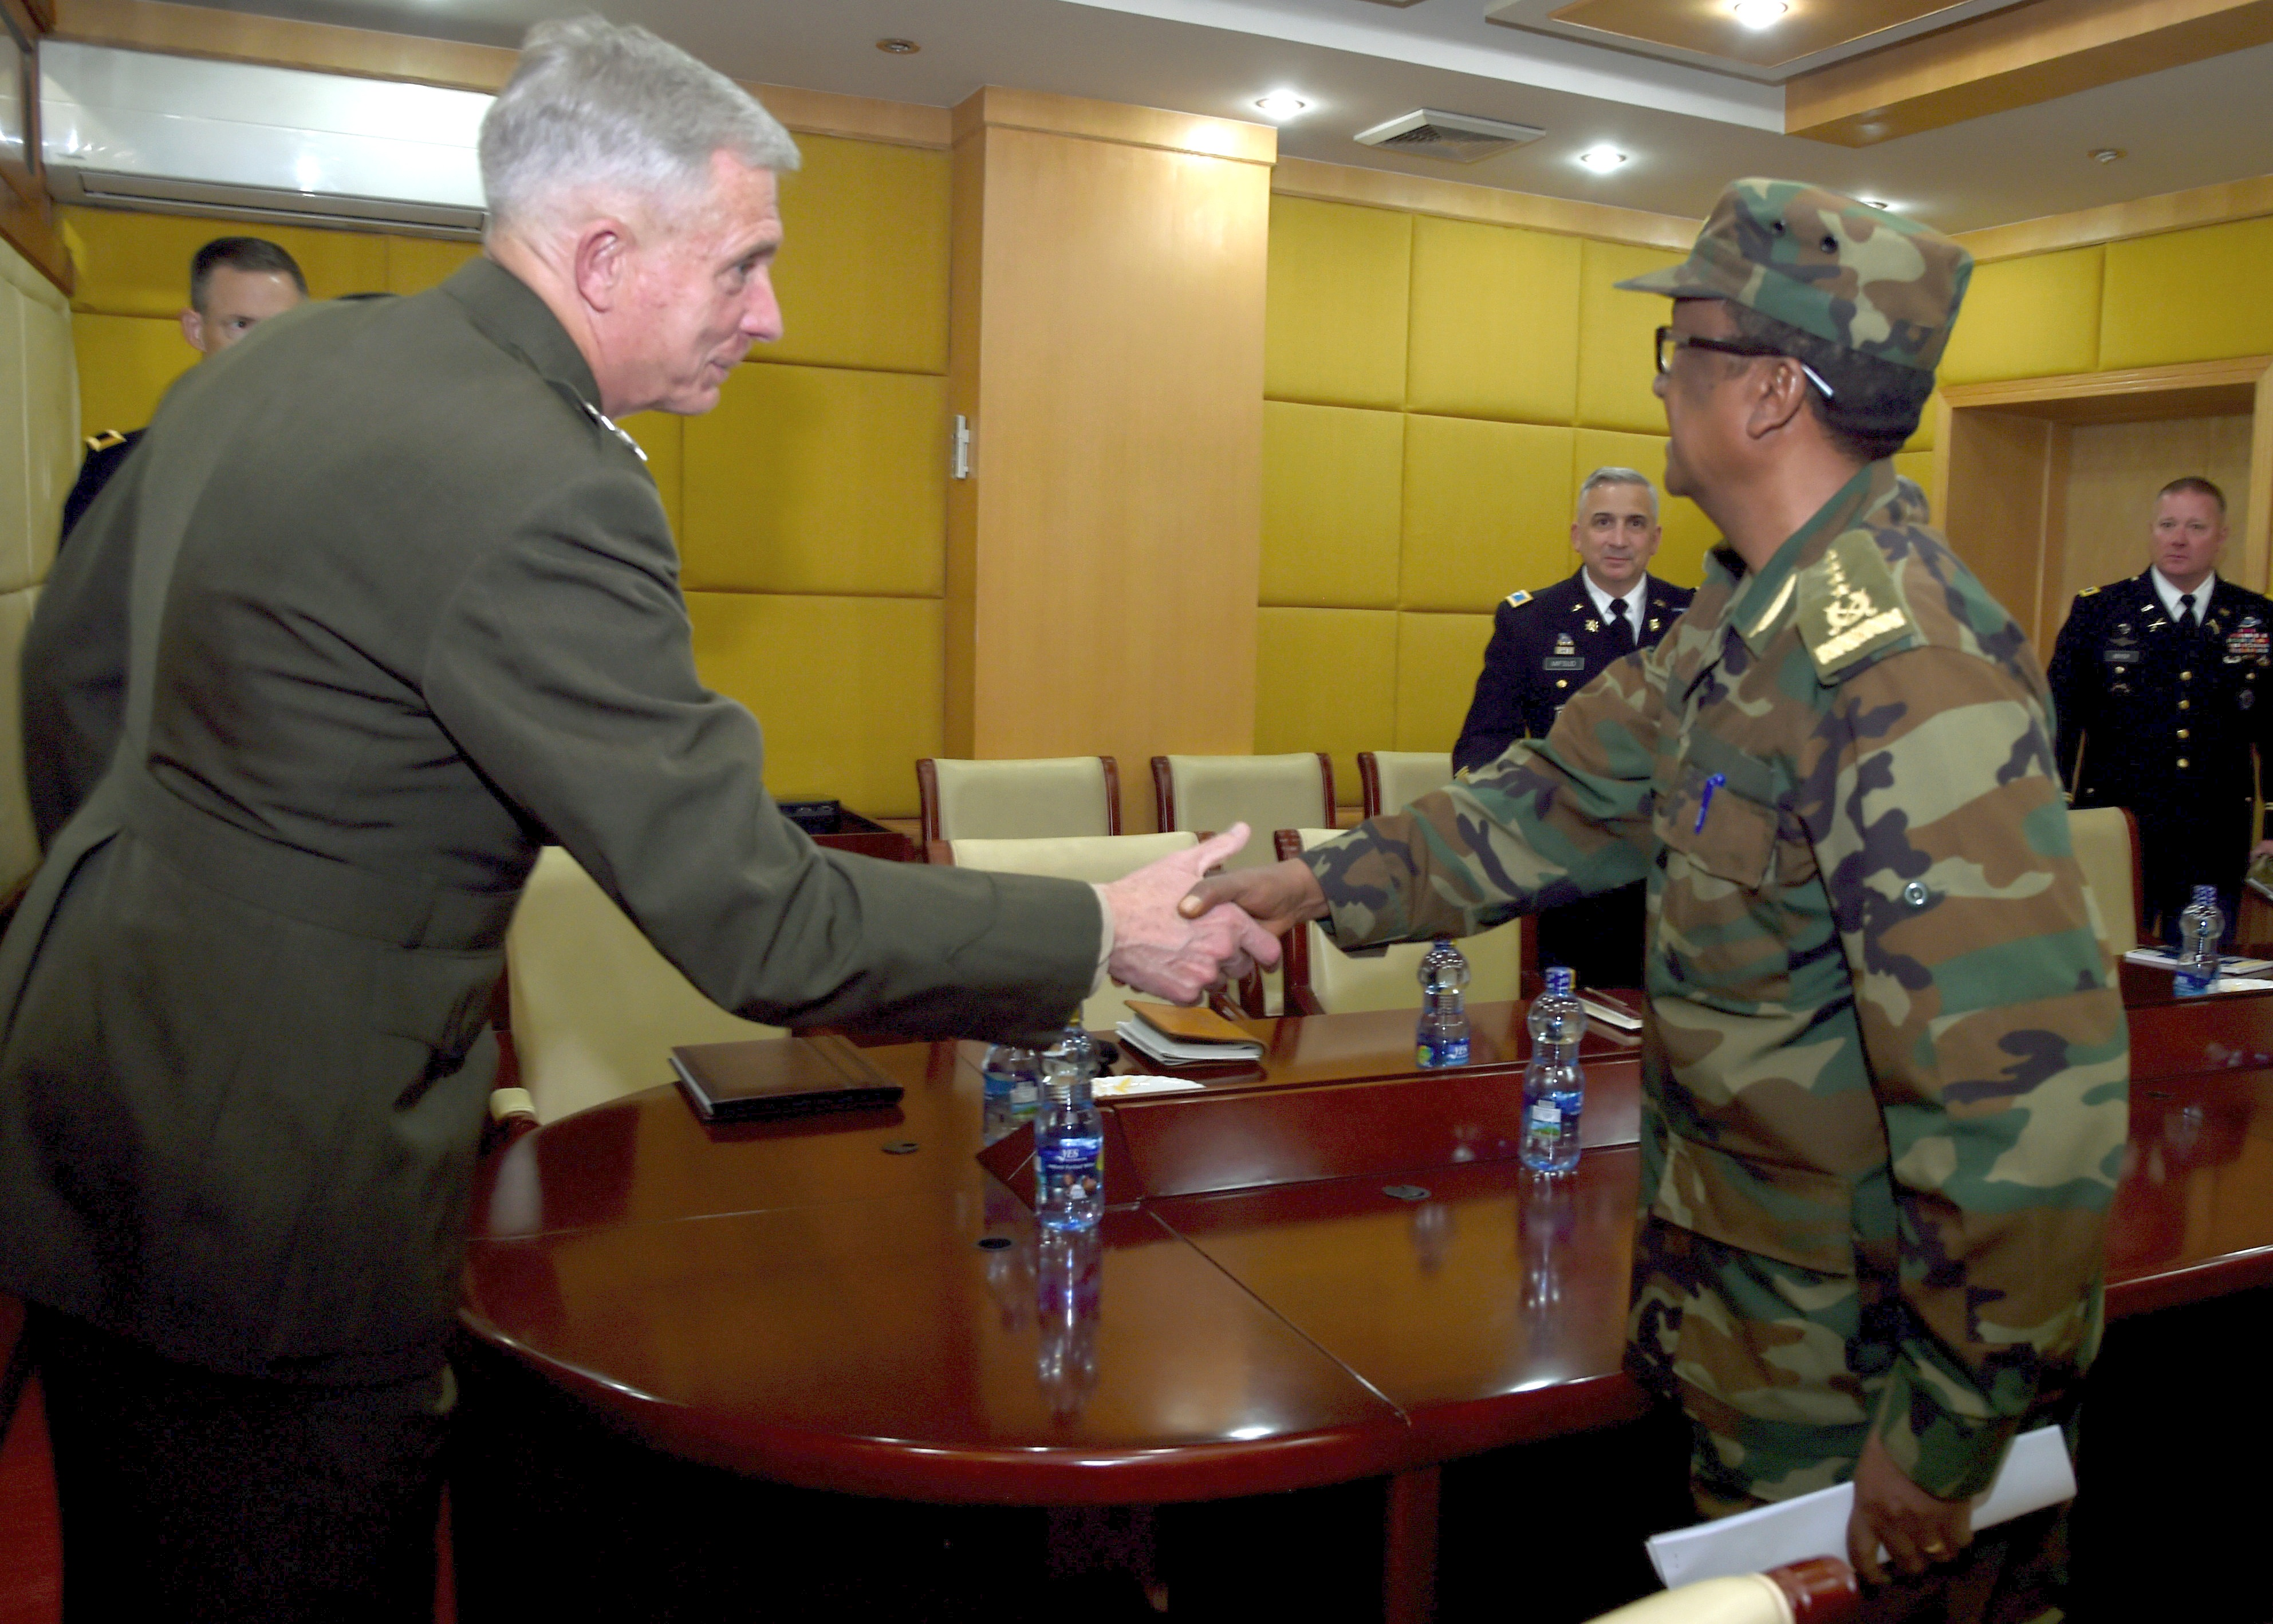 ADDIS ABABA, Ethiopia – U.S. Marine Gen. Thomas D. Waldhauser, Commander, U.S. Africa Command, shakes hands with Ethiopian Gen. Birhanu Jula, Deputy Chief of General Staff for the Ministry of Defense for Ethiopia at a meeting in Addis Ababa, Ethiopia November 28. During his visit to Addis Ababa, Waldhauser also met with Ethiopian Minister of Defense Aisha Mohammed, U.S. Ambassador to Ethiopia Michael Raynor, and Assistant Secretary of State for the Bureau of African Affairs, Tibor P. Nagy. (U.S. Navy Photo by Mass Communication Specialist 1st Class Nick Scott)